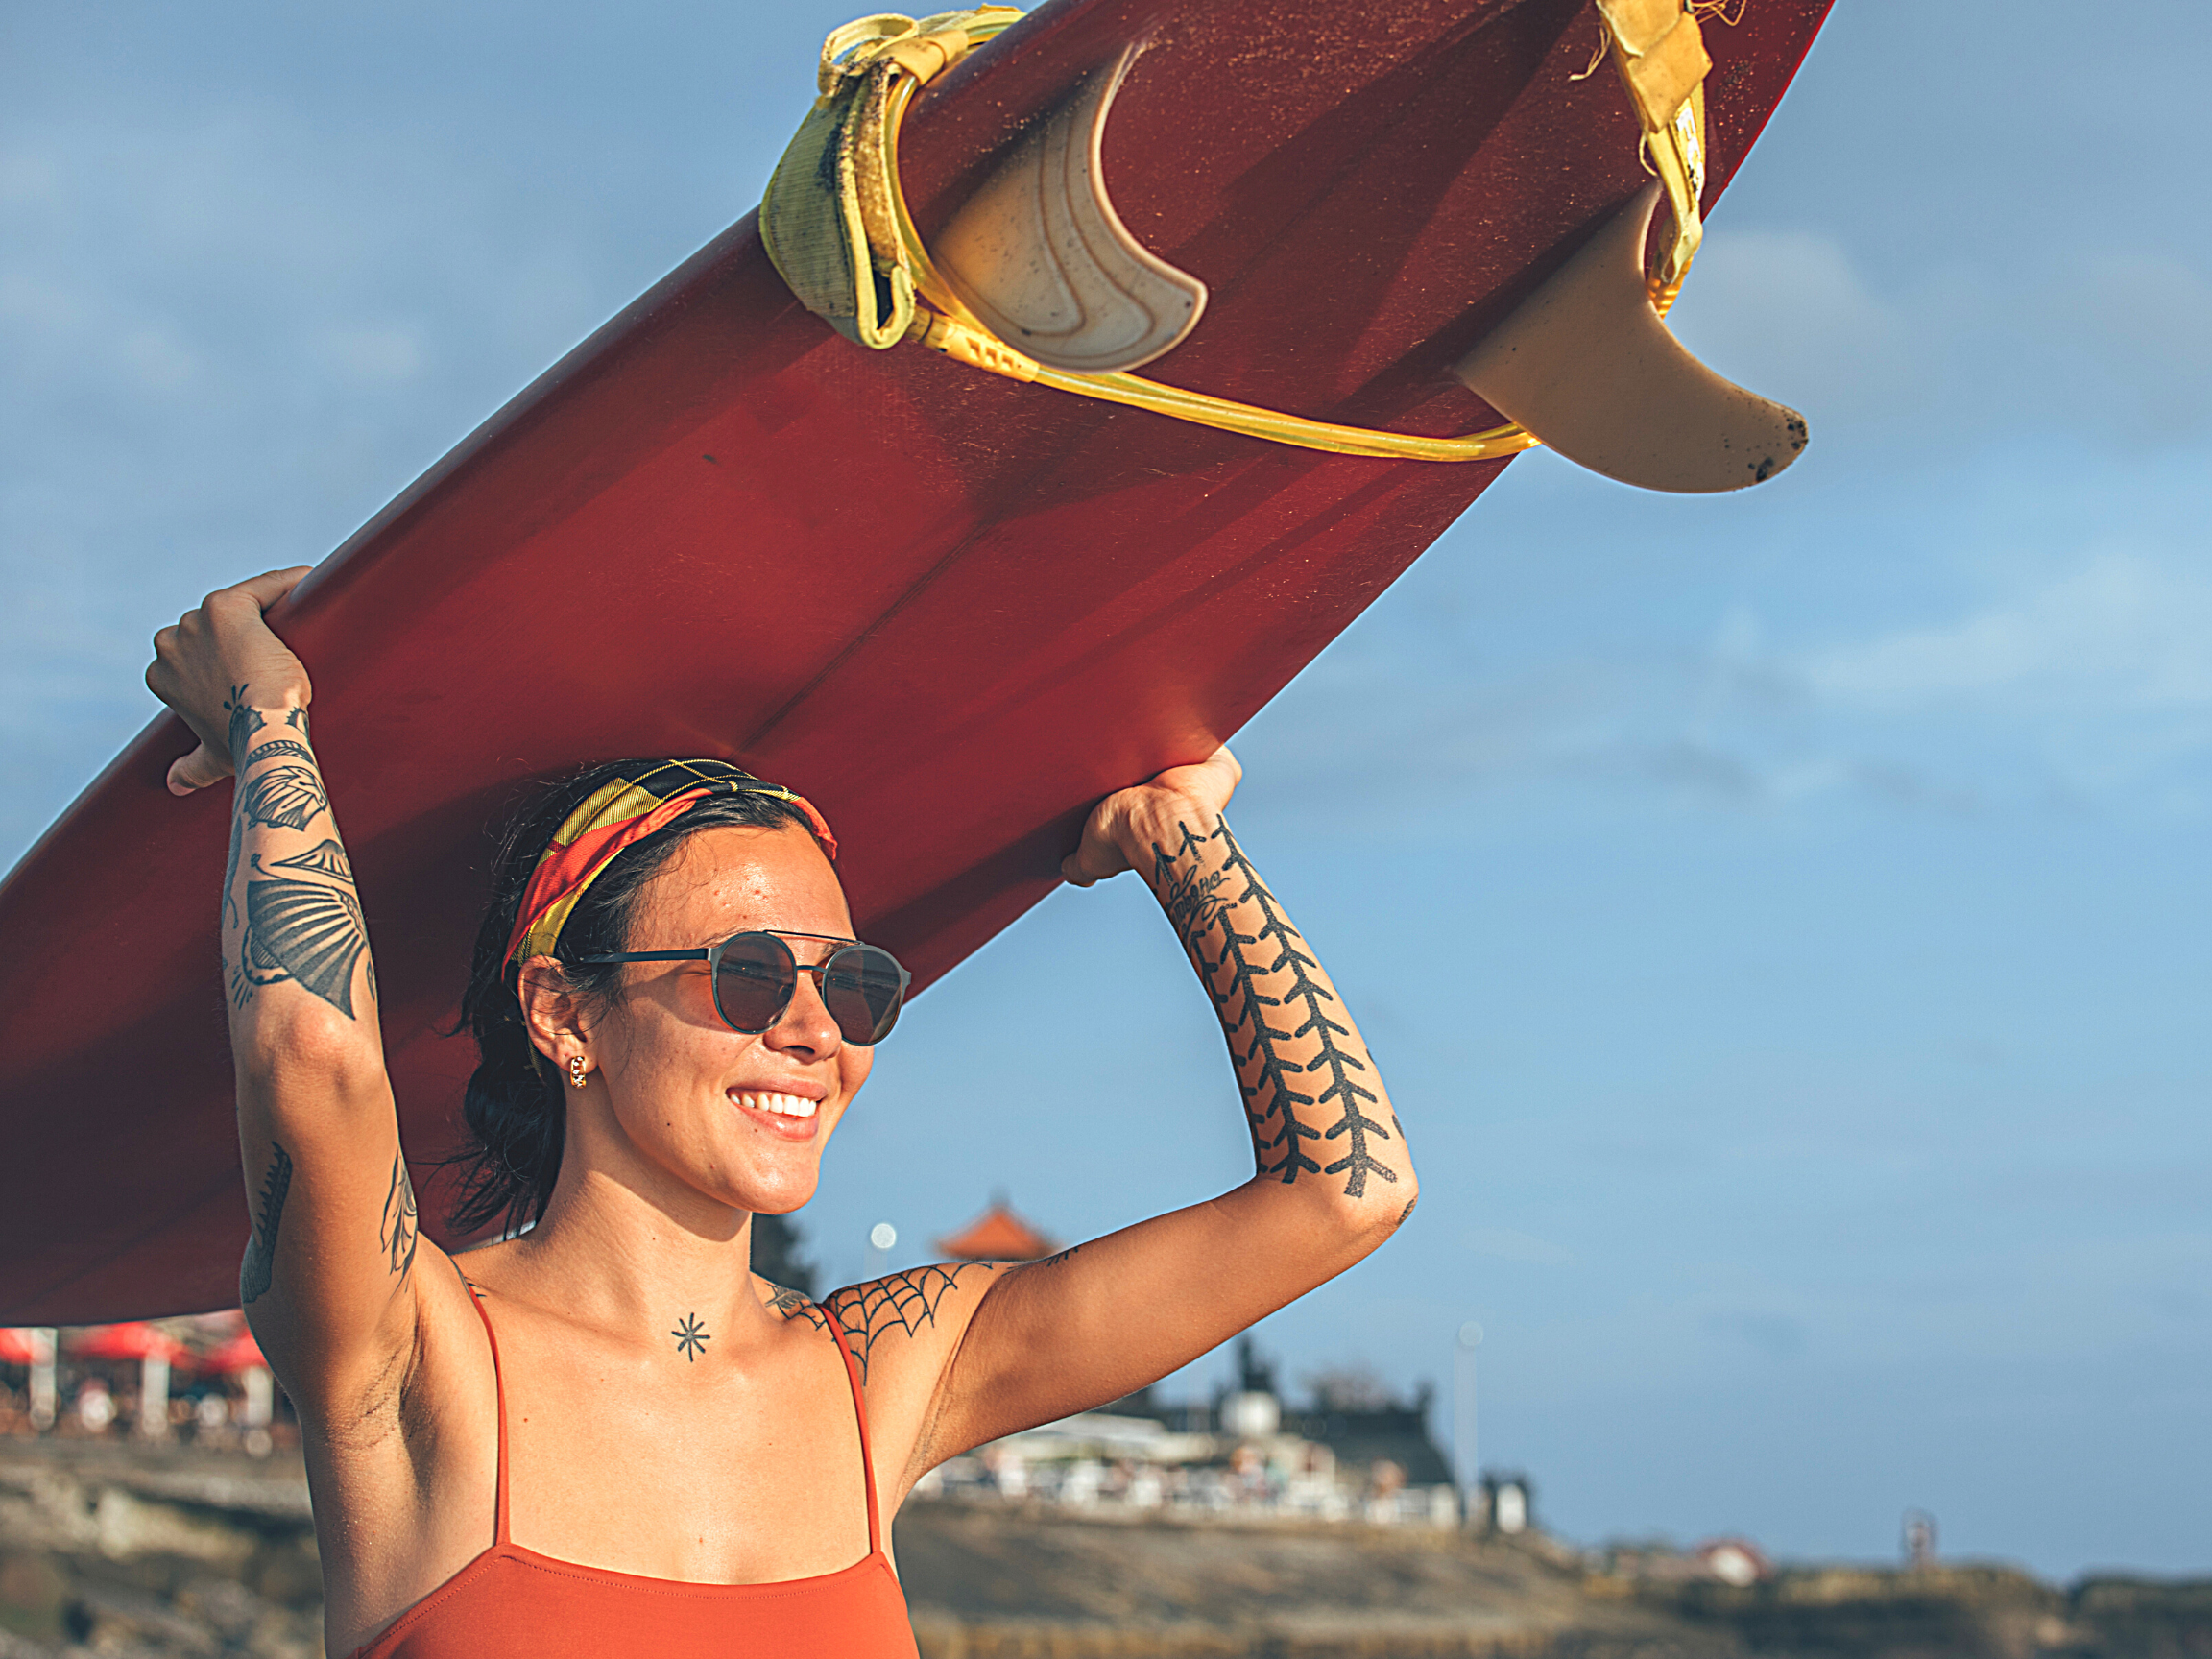 smiling tattooed woman wearing sunglasses and carrying a surfboard